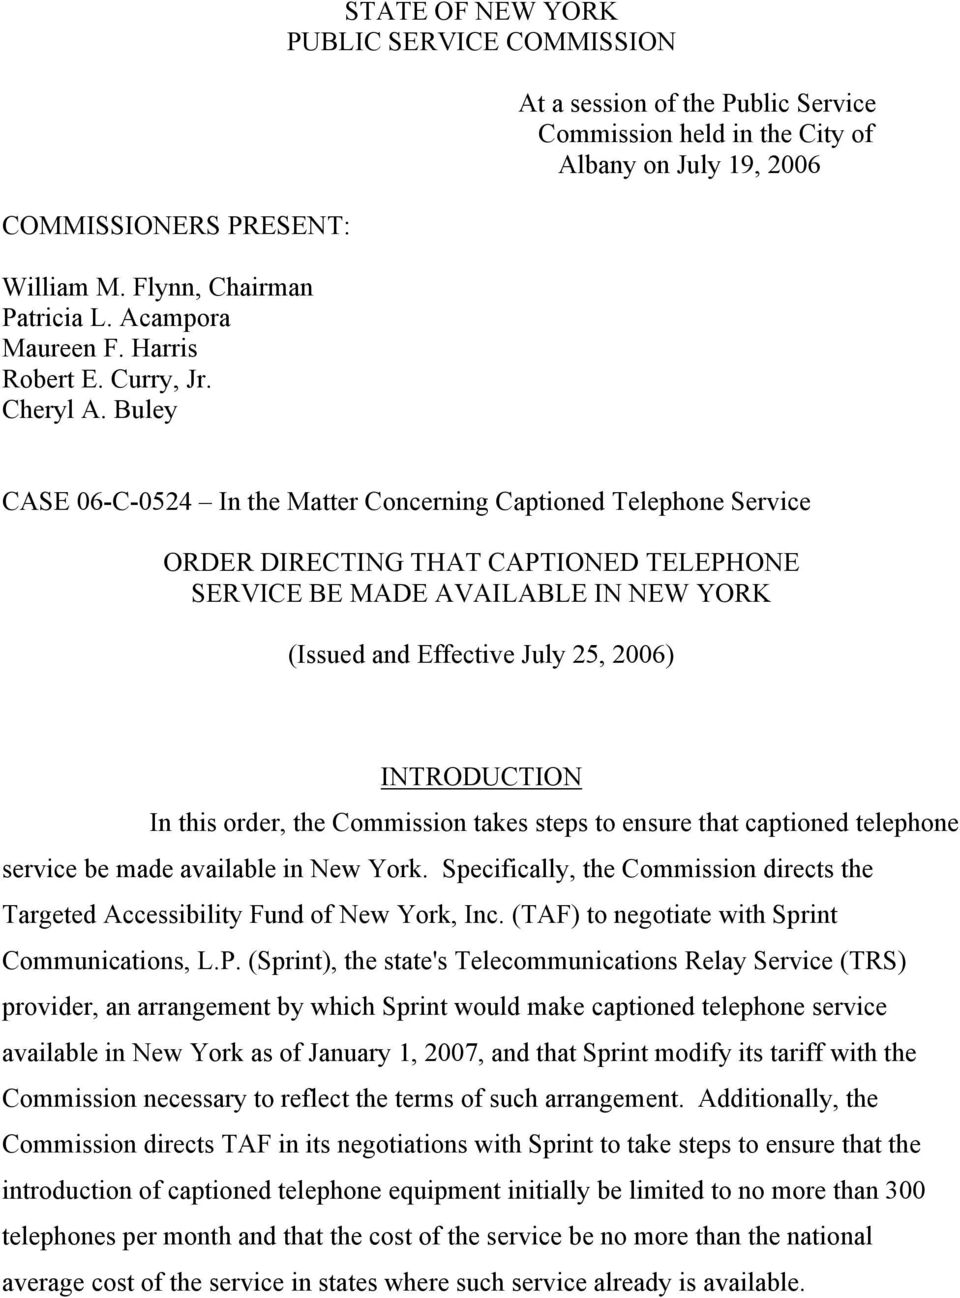 Service ORDER DIRECTING THAT CAPTIONED TELEPHONE SERVICE BE MADE AVAILABLE IN NEW YORK (Issued and Effective July 25, 2006) INTRODUCTION In this order, the Commission takes steps to ensure that